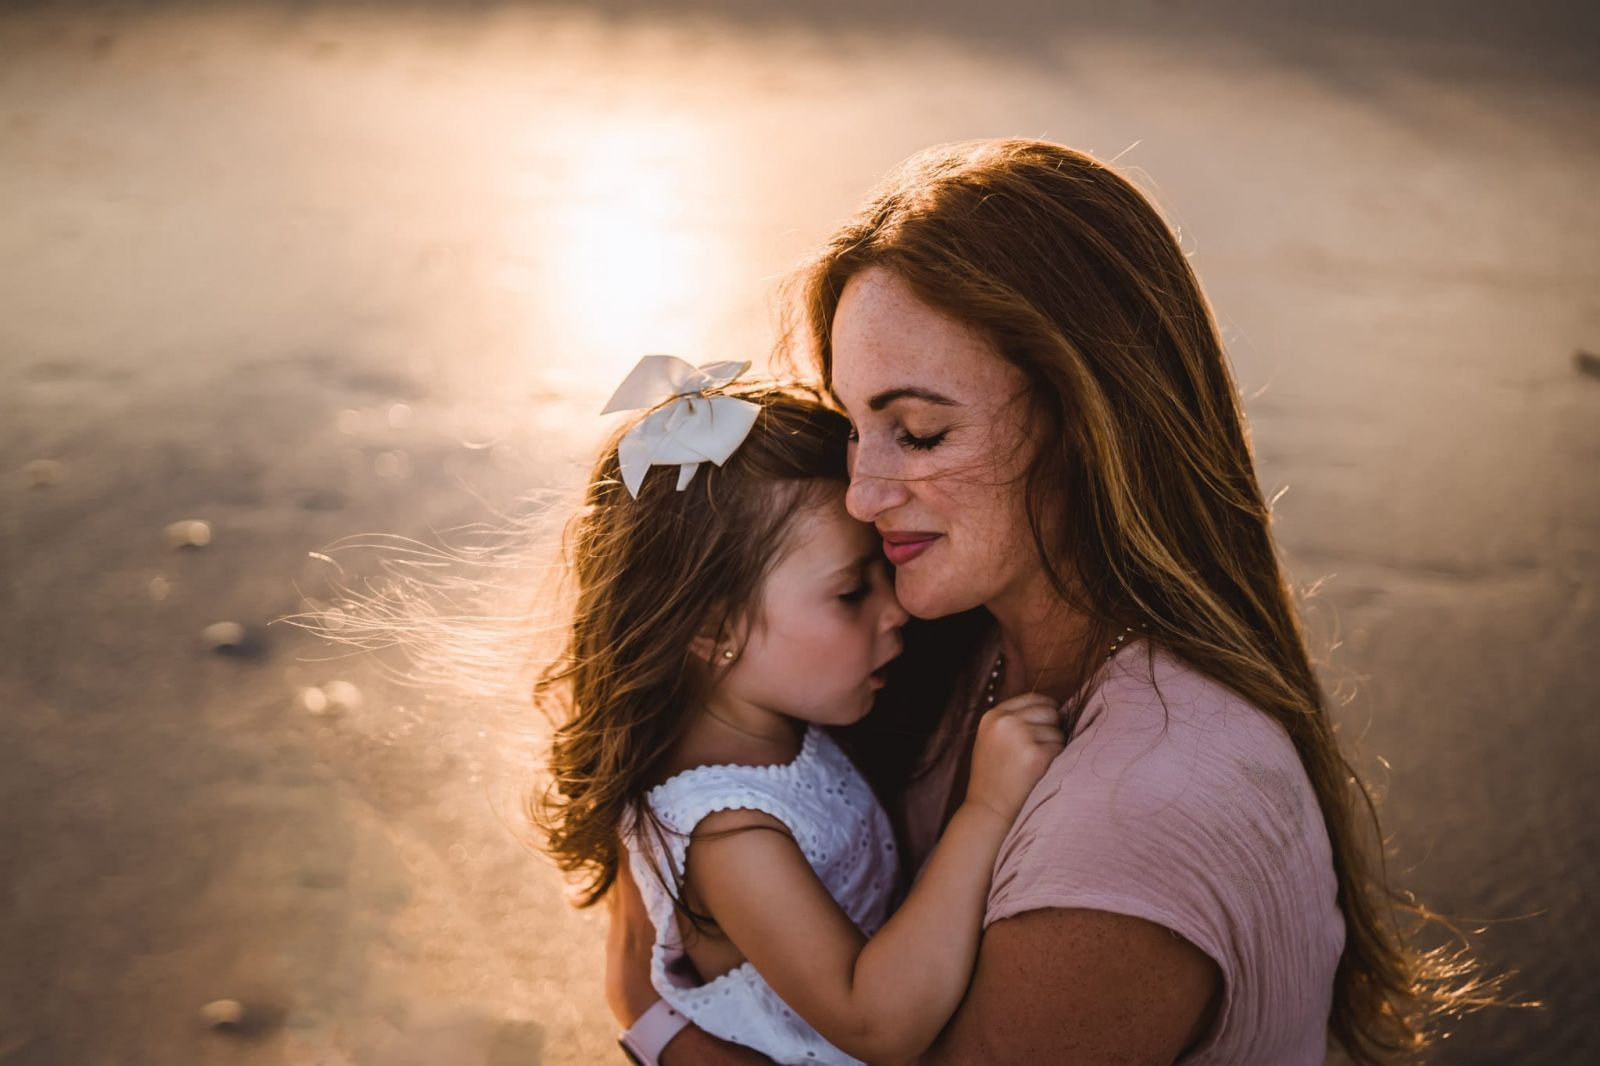 Mom cuddling daughter in golden hour beach light